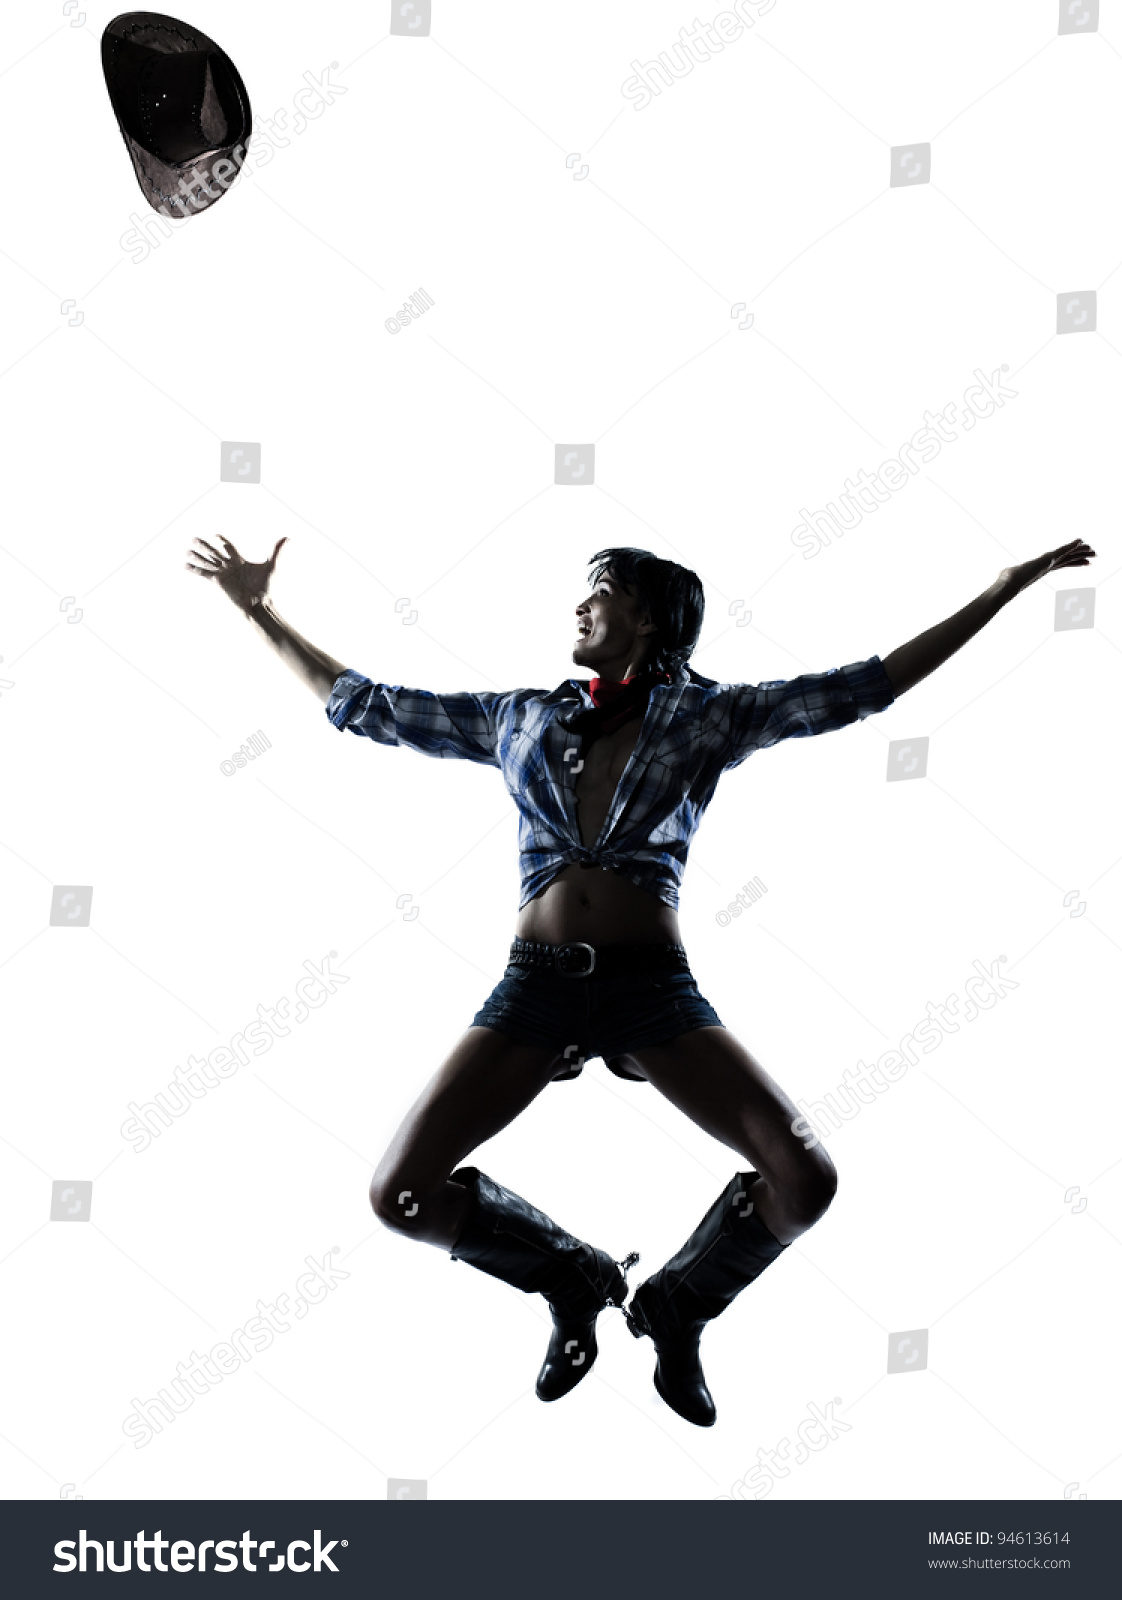 lesbian cowgirl dancing to contry music